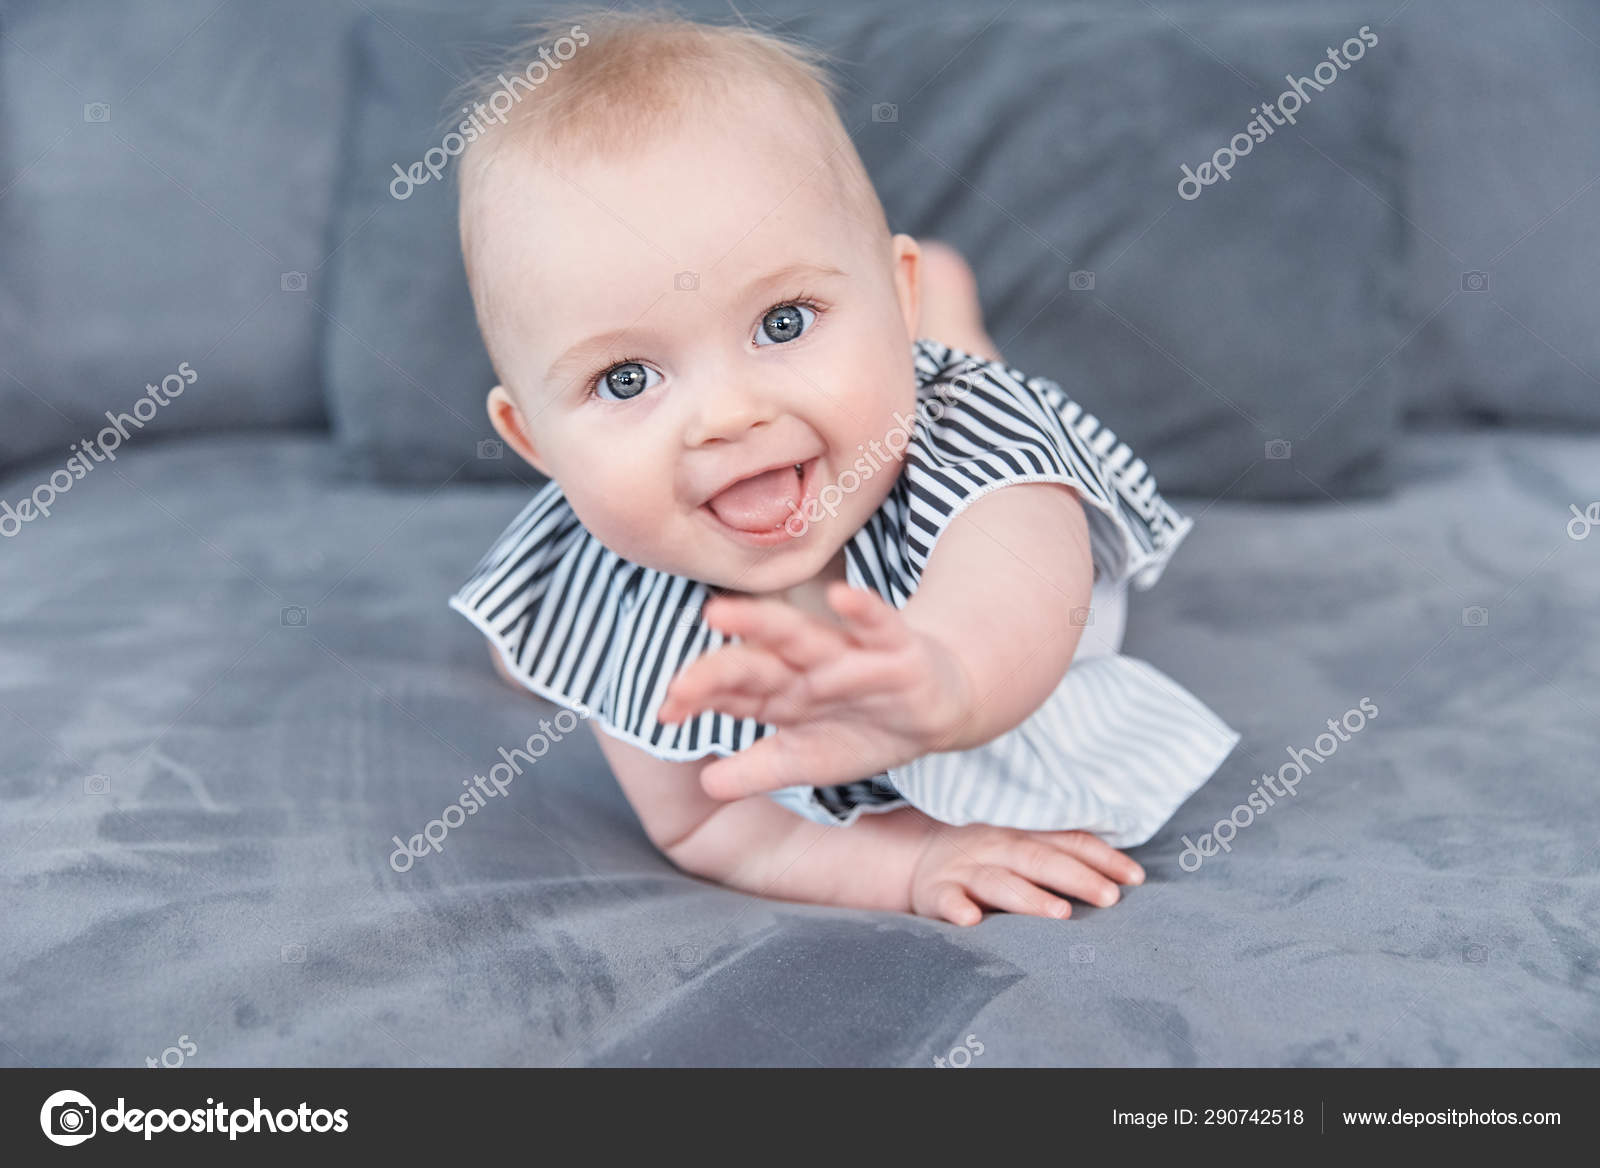 ᐈ Chubby Cute Baby Stock Images Royalty Free Chubby Baby Pictures Download On Depositphotos